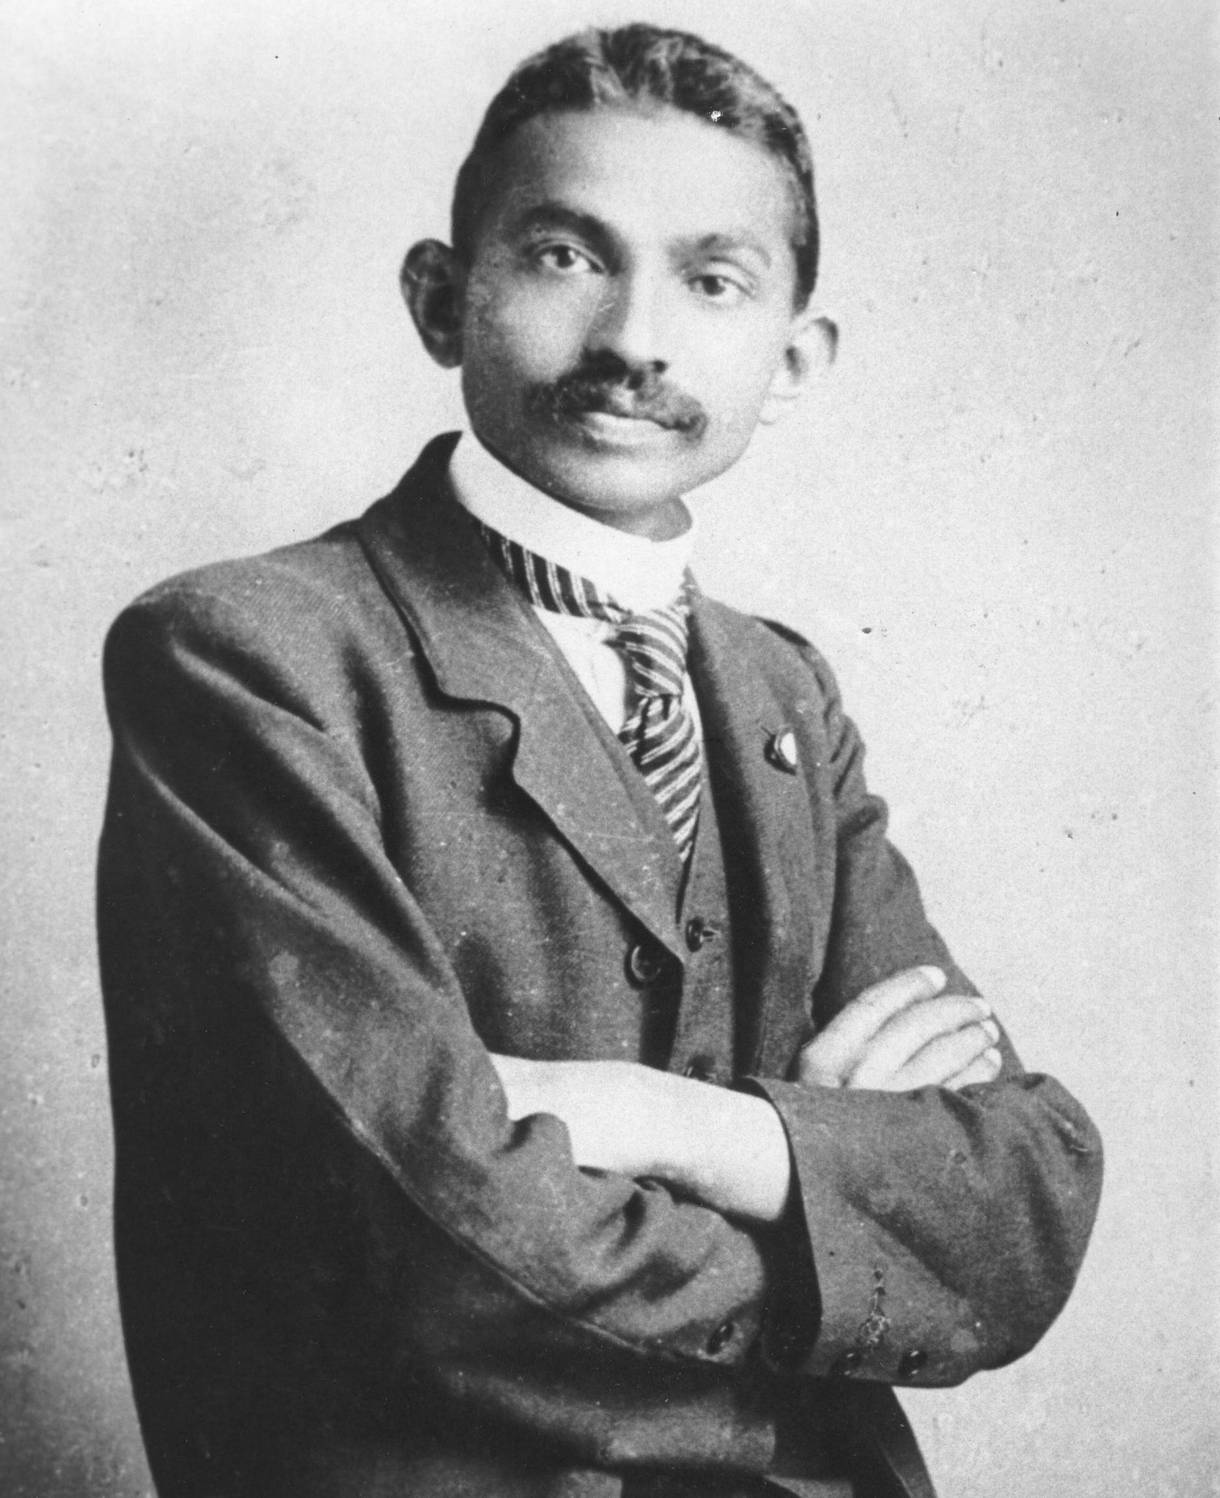 gandhi-was-a-racist-who-slept-with-young-girls-and-let-his-wife-die-of-pneumonia-body-image-1449157897